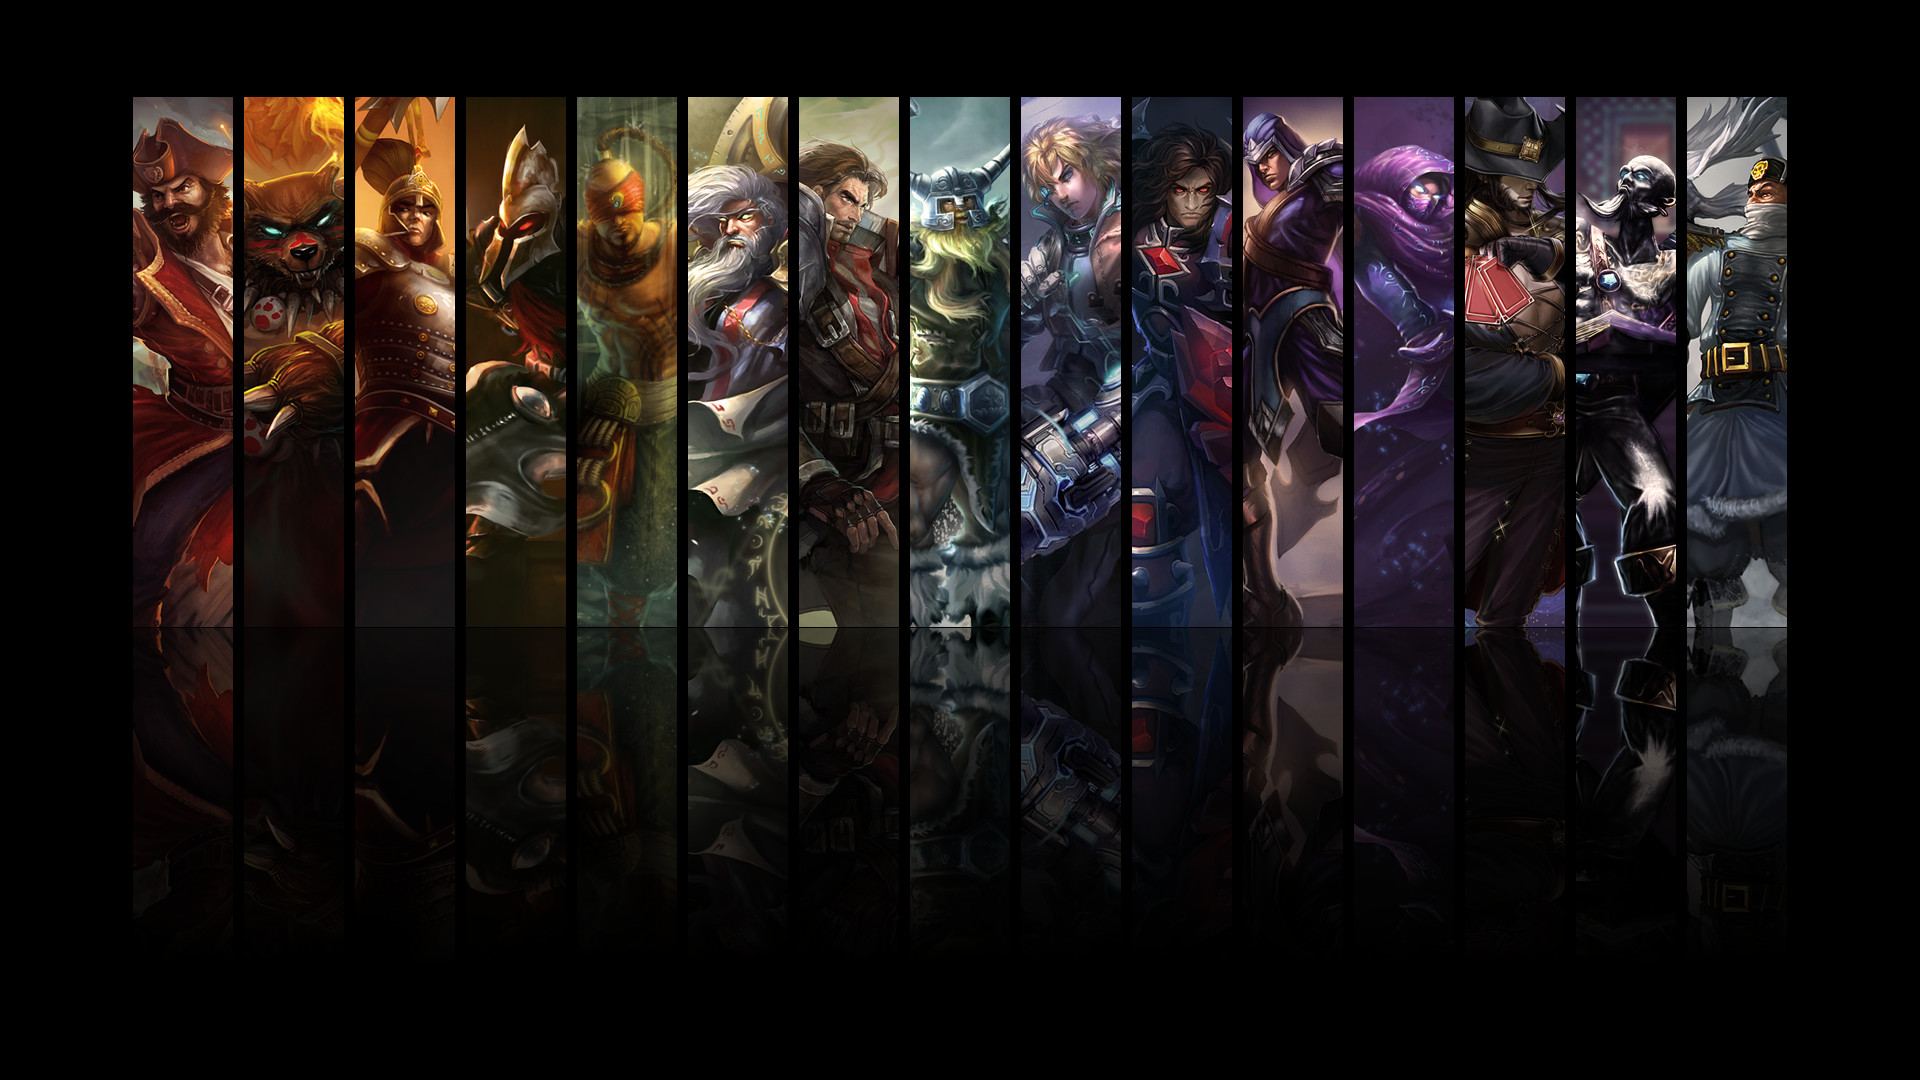 14 Swain (League Of Legends) HD Wallpapers | Backgrounds – Wallpaper Abyss